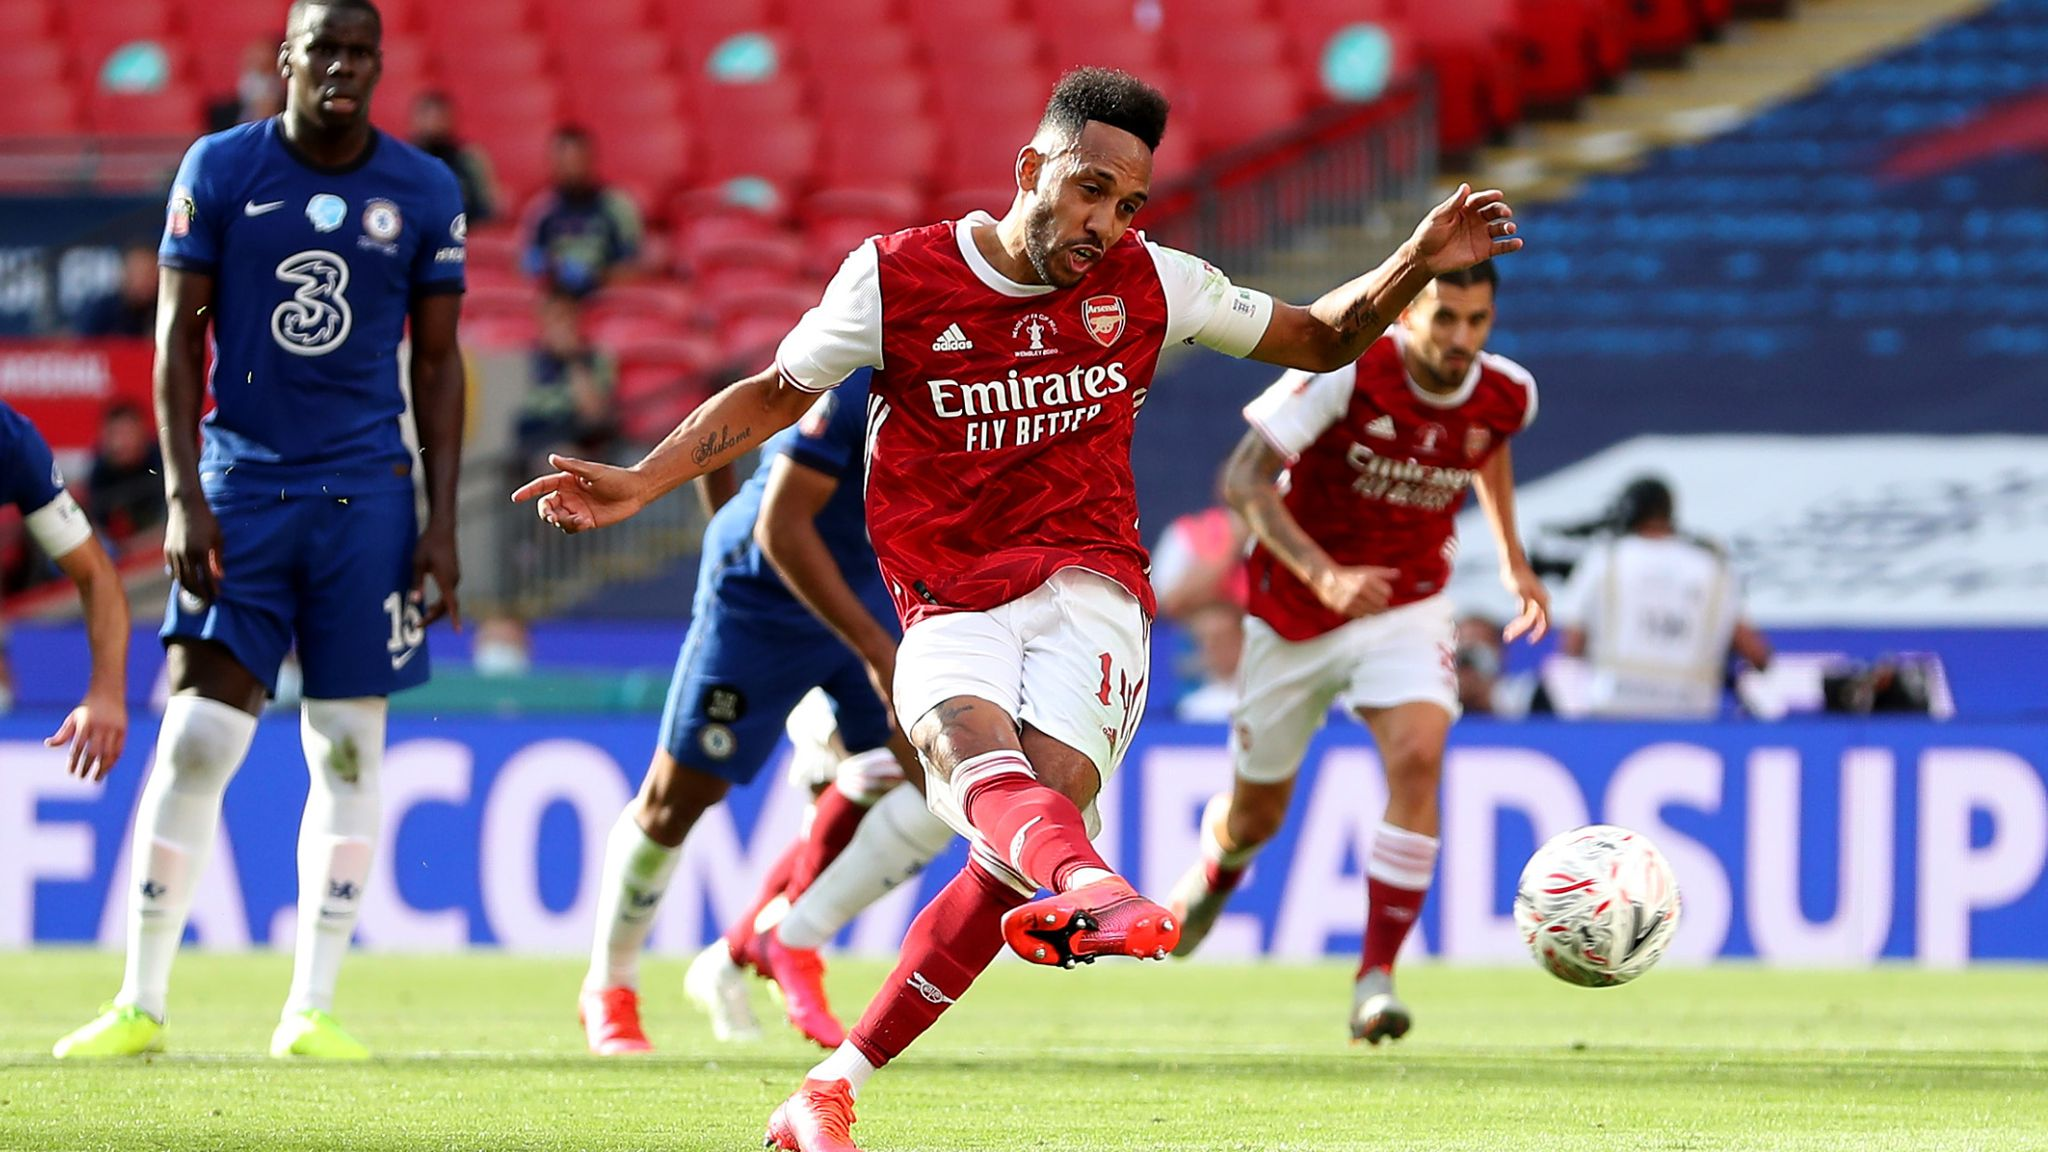 champions league and europa league qualification what arsenal s fa cup win means for tottenham and wolves football news sky sports europa league qualification